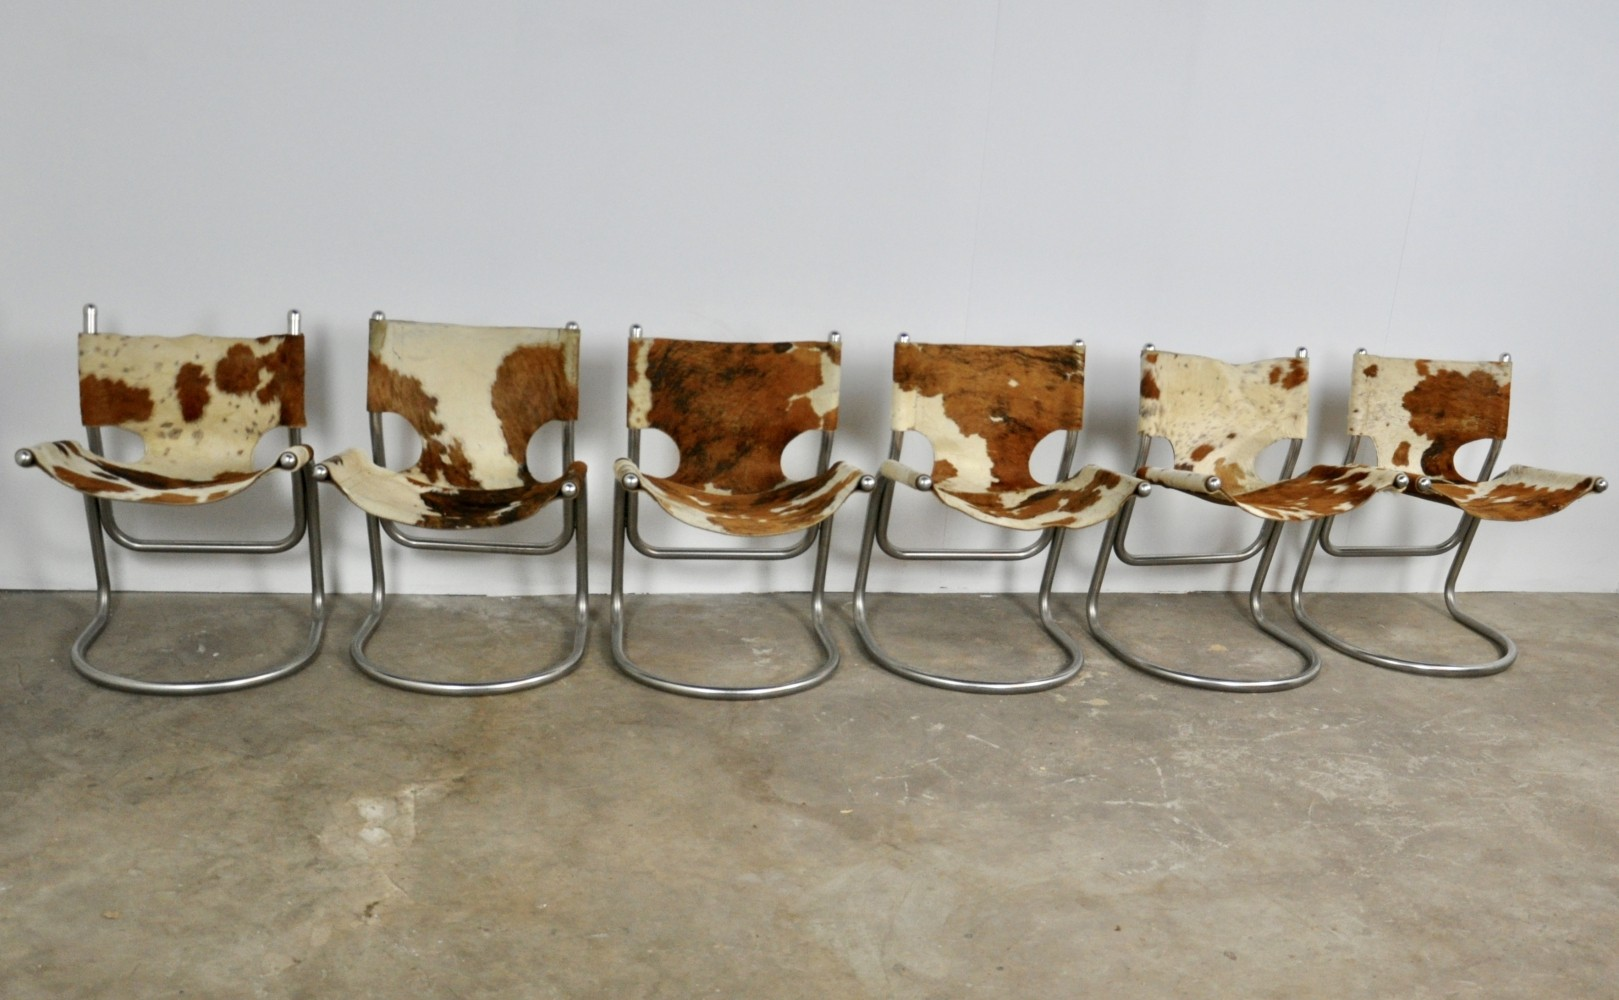 Cow skin chairs, 1960s